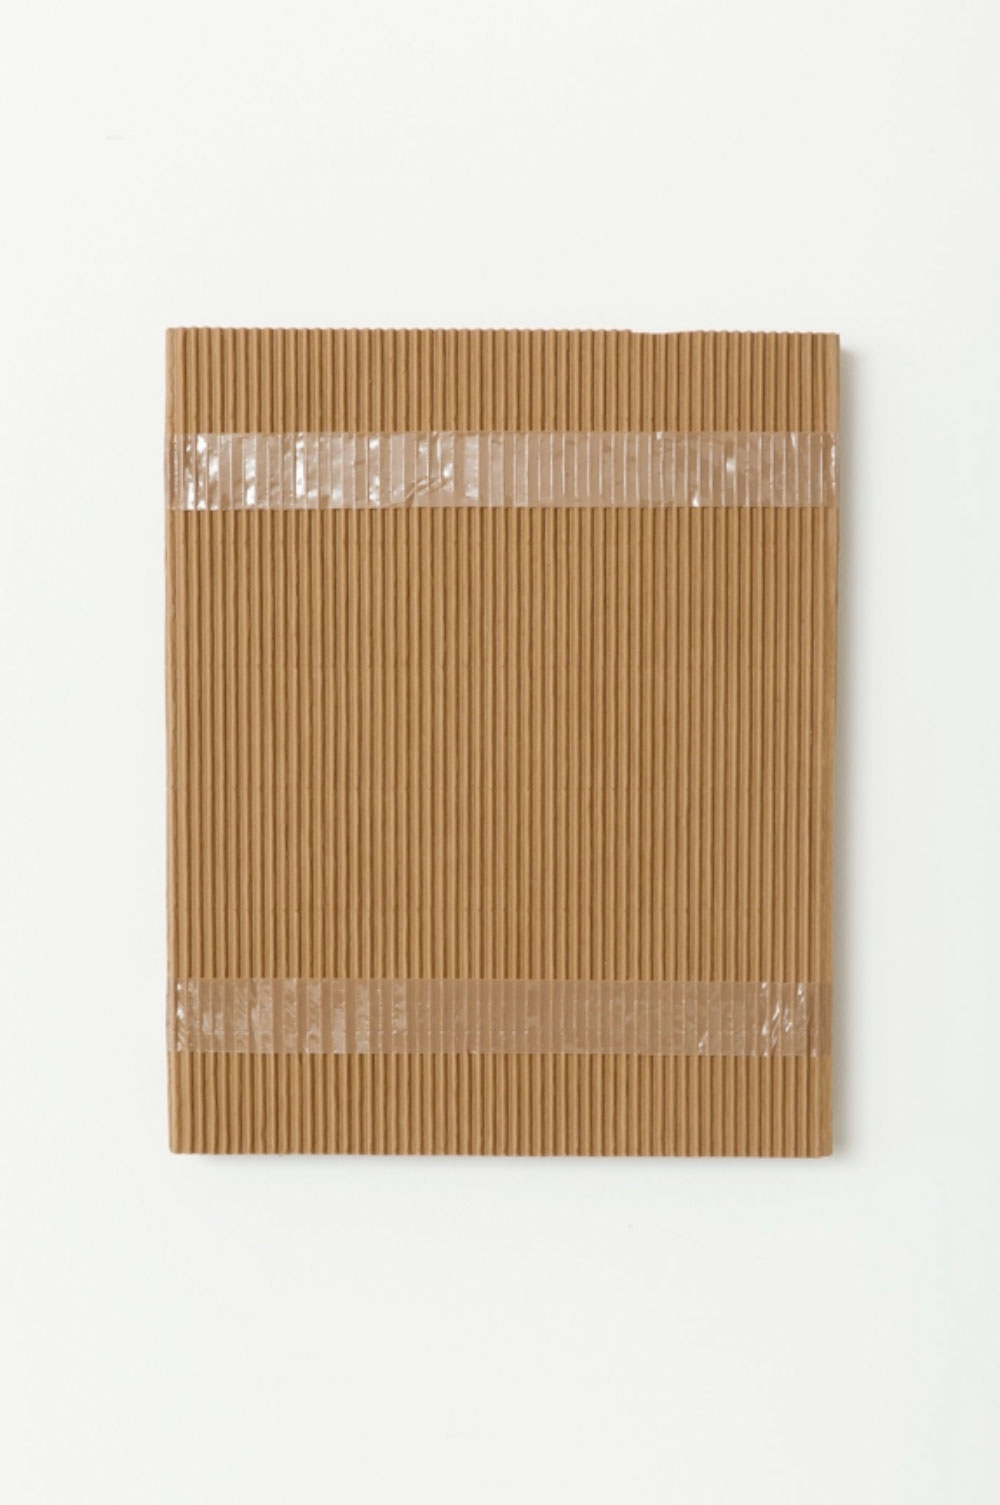 """Monochrome with Corrugated Cardboard and Tan Packing Tape , 2016 Acrylique sur toile de lin  20 x 16""""."""